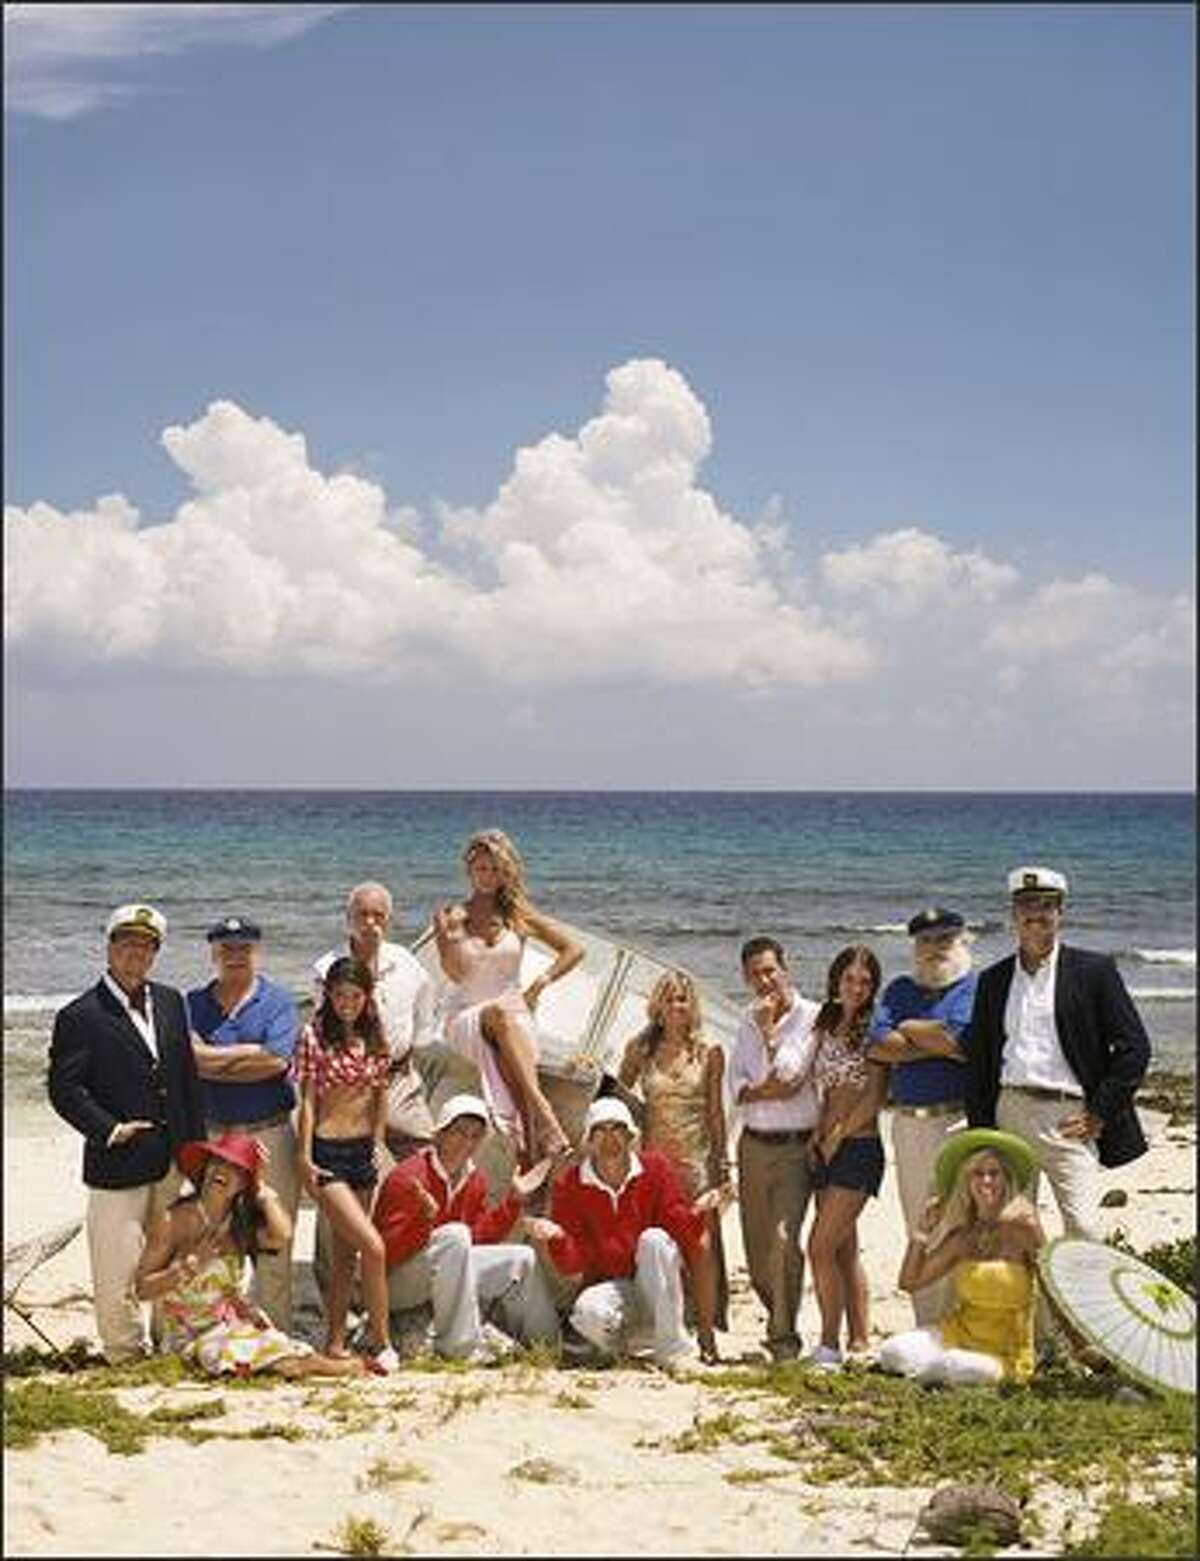 """""""The Real Gilligan's Island,"""" airing Tuesday and Wednesday nights on TBS, pits two """"mirror-image"""" groups of castaways against one another in challenges inspired by the TV sitcom. One team, designated Minnow Gold, poses on the left; rivals Minnow Green are on the right. Now, let's meet the cast ..."""